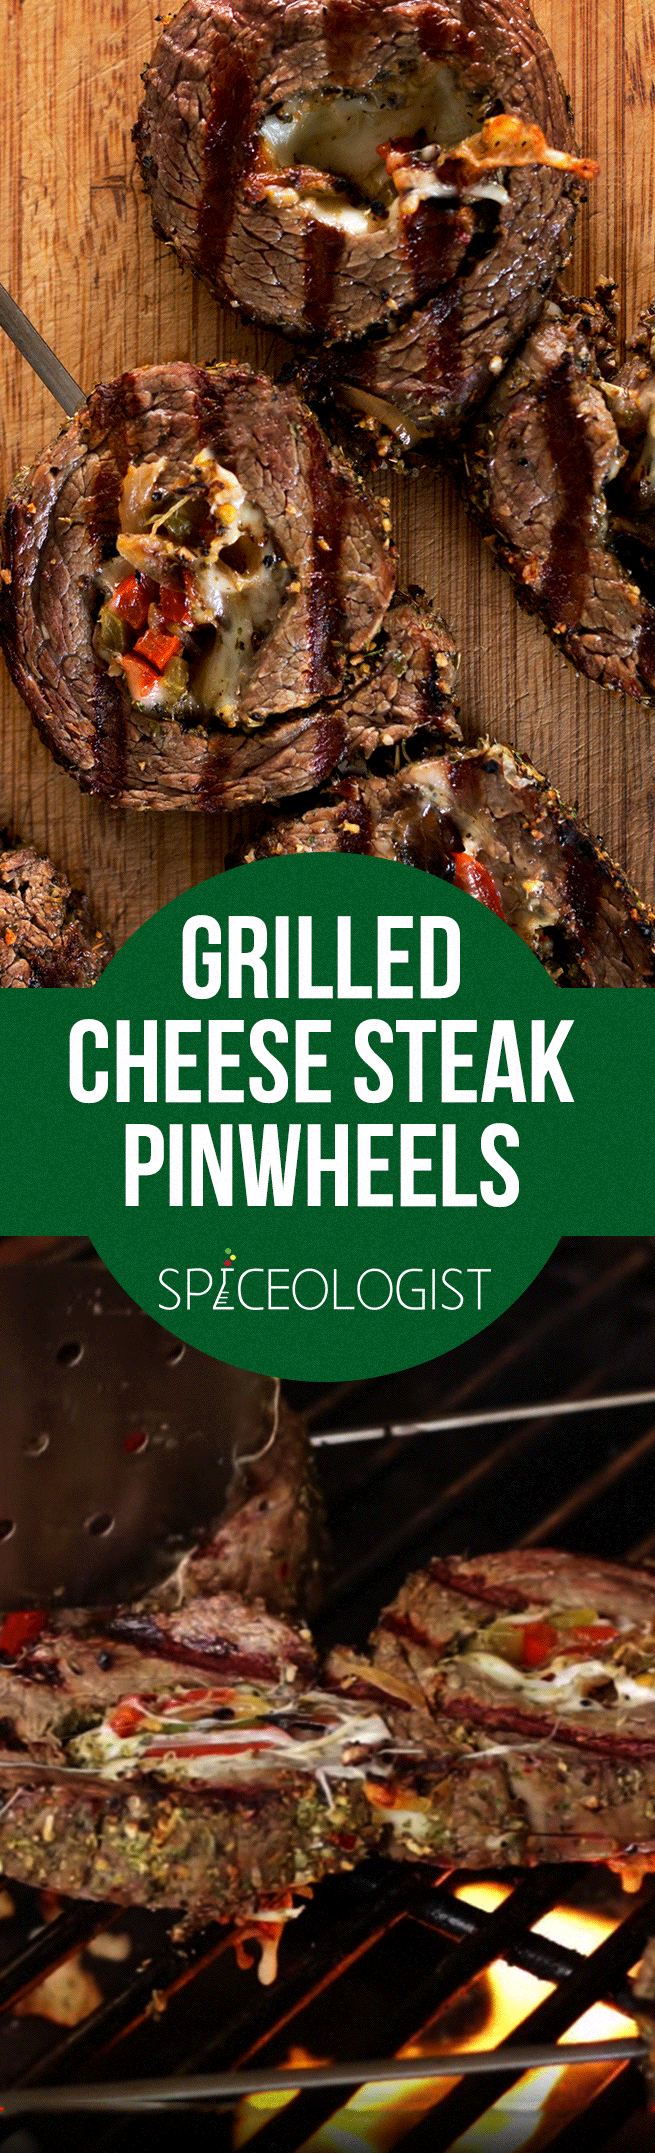 Grilled Cheese Steak Pinwheels | spiceologist.com